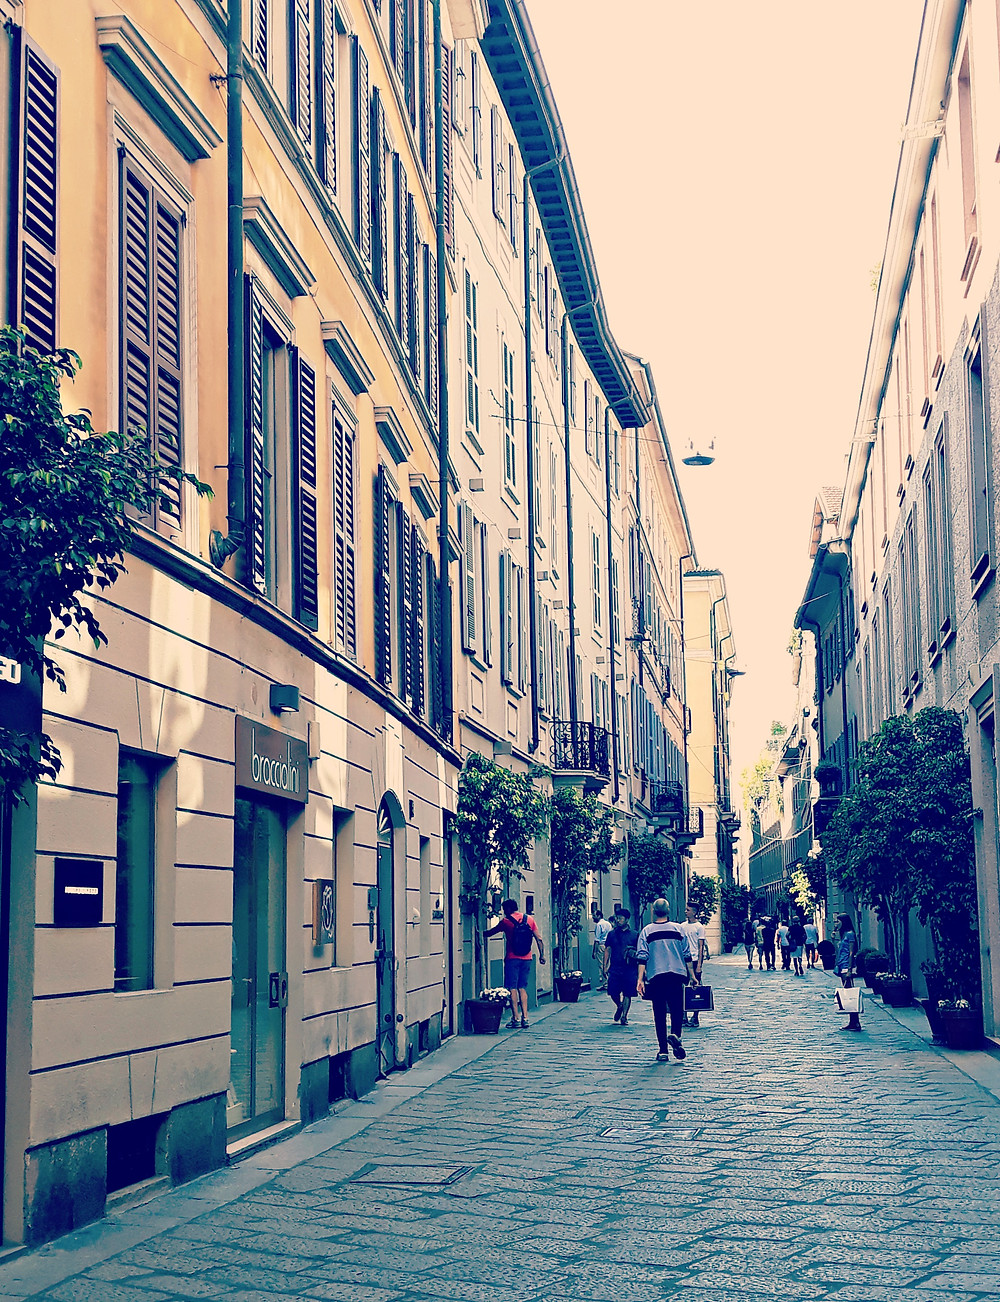 One of Milan's fabulous shopping streets in the famous fashion quadrangle.